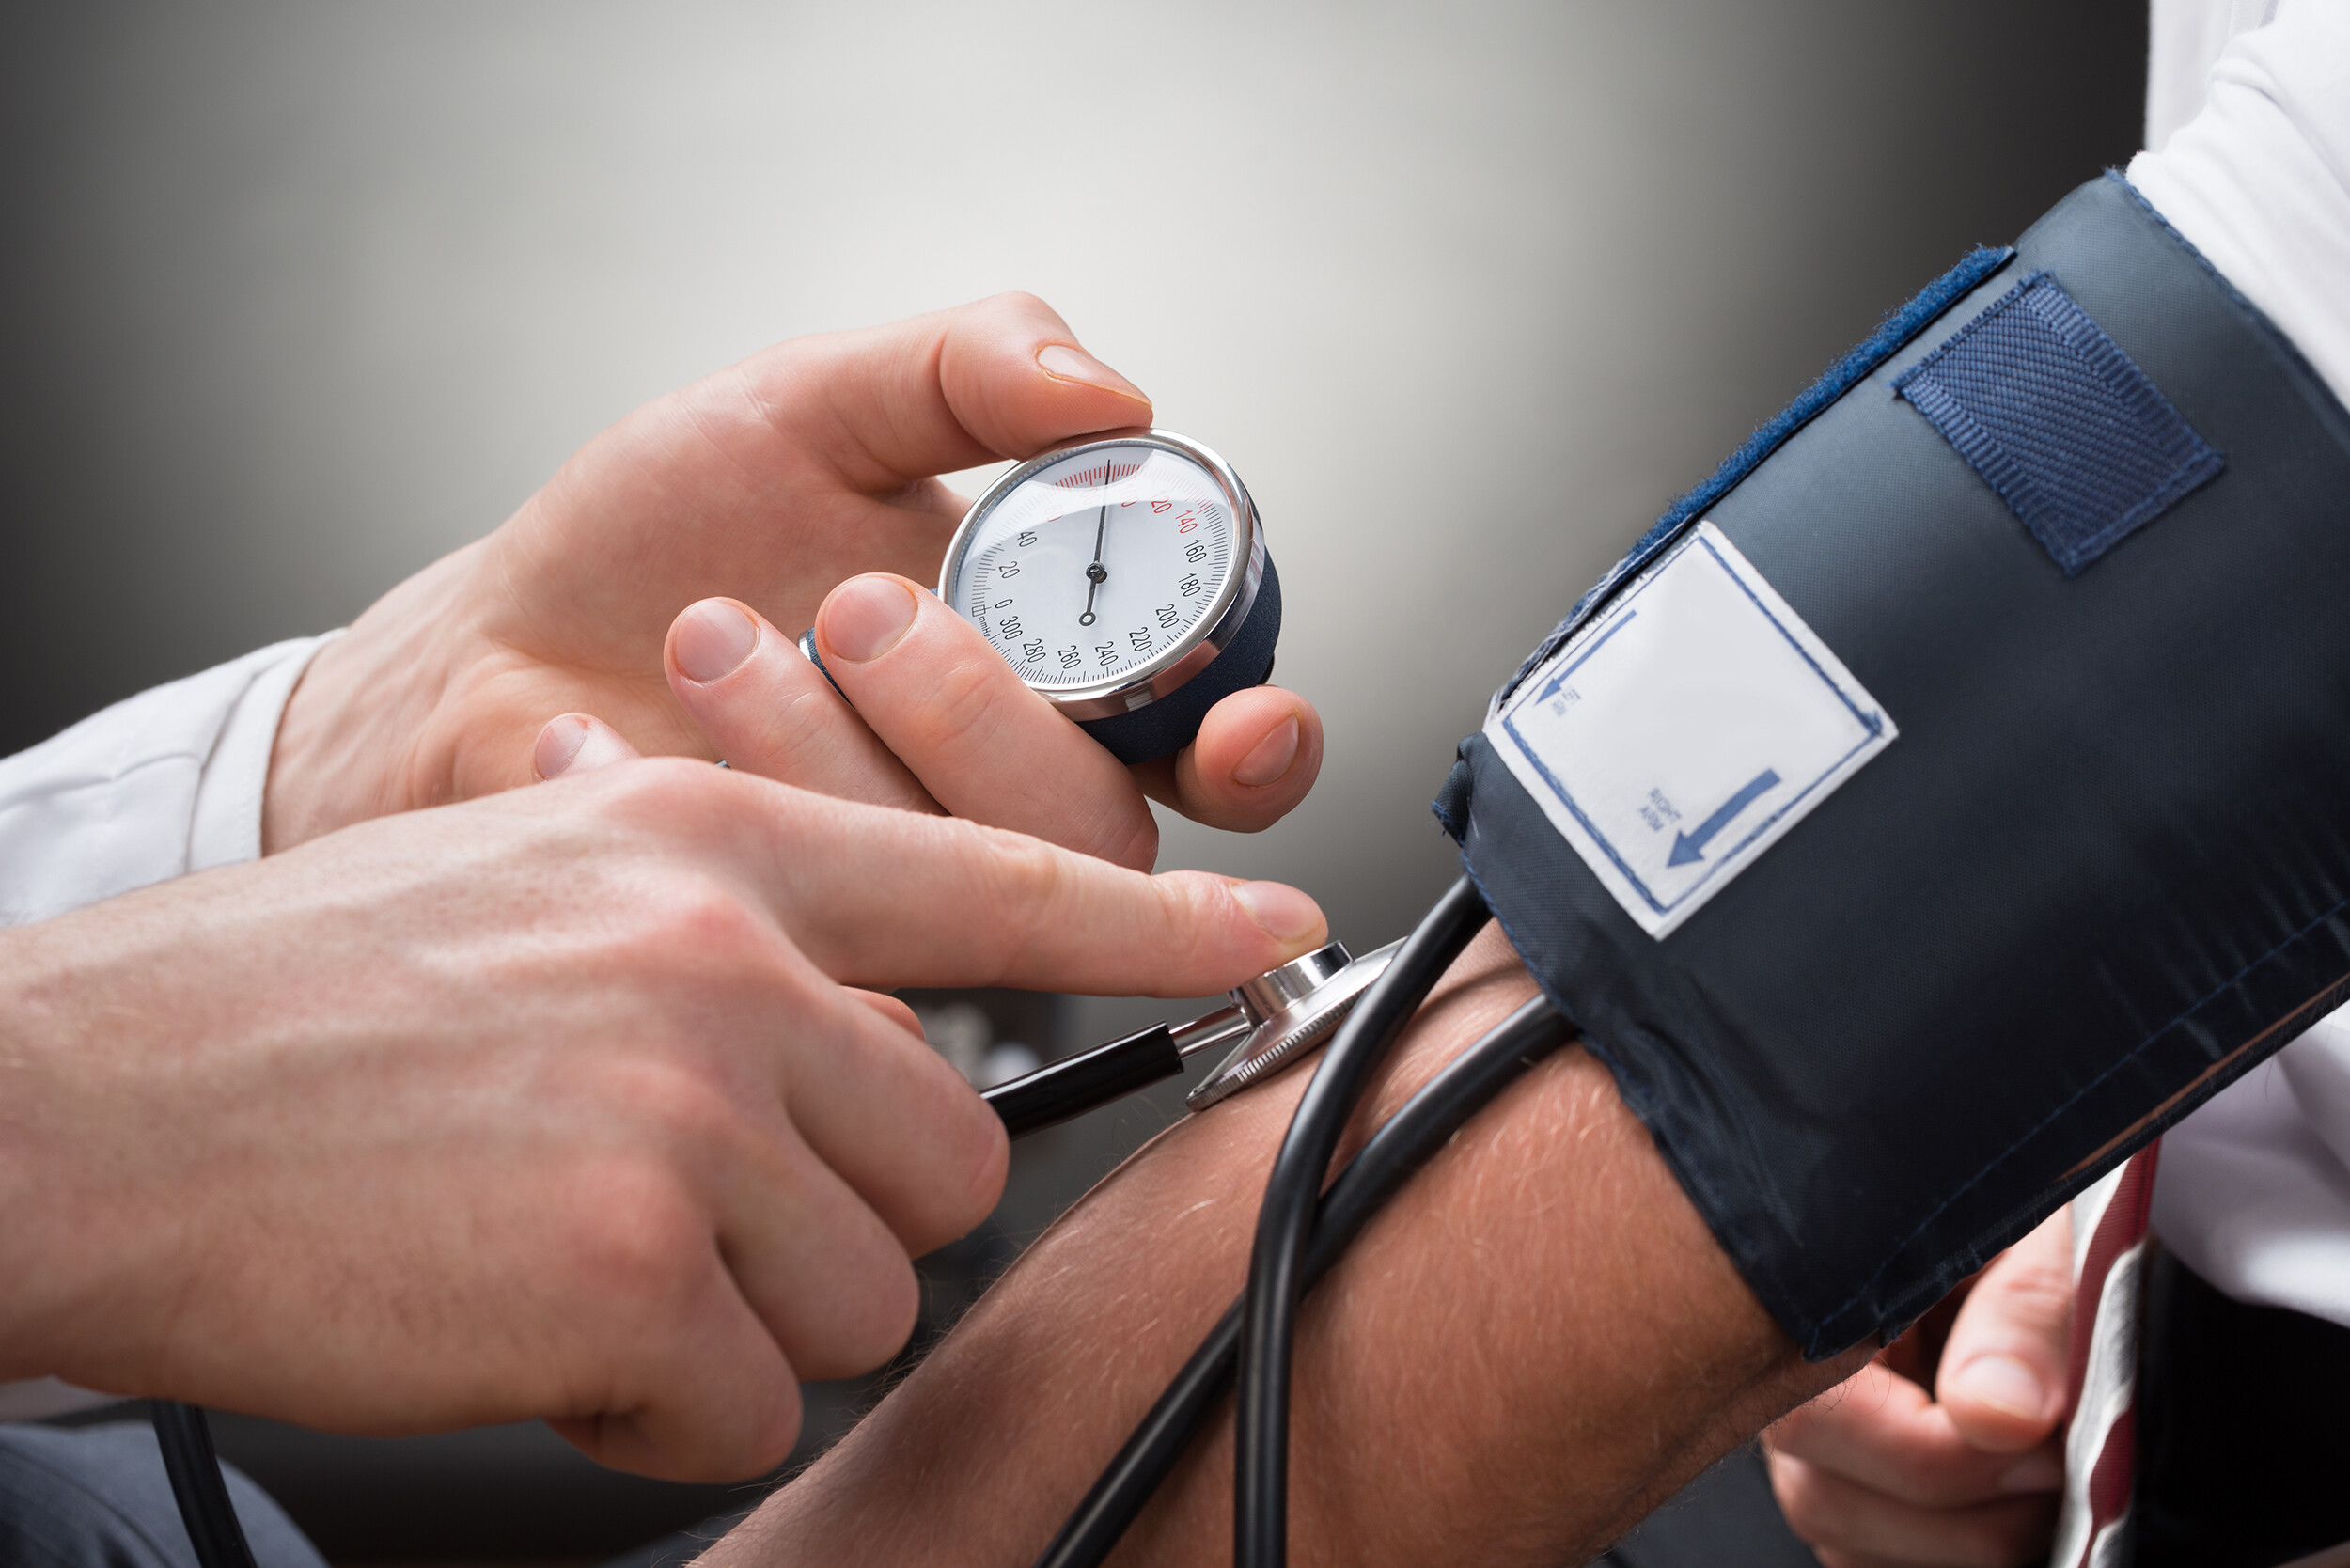 High blood pressure in young adults is linked to smaller brain sizes and dementia, a study finds